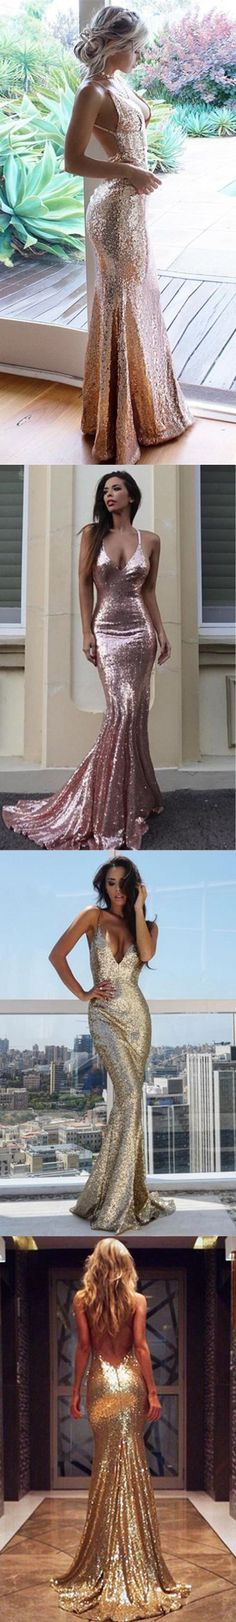 Mermaid Spaghetti Straps Floor-Length Champagne Sequined Prom Dress M1733#prom #promdress #promdresses #longpromdress #2018newfashion #newstyle #promgown #promgowns #formaldress #eveningdress #eveninggown #2019newpromdress #partydress #meetbeauty #mermaid #spaghettistrap #champagne #sequin #vneck